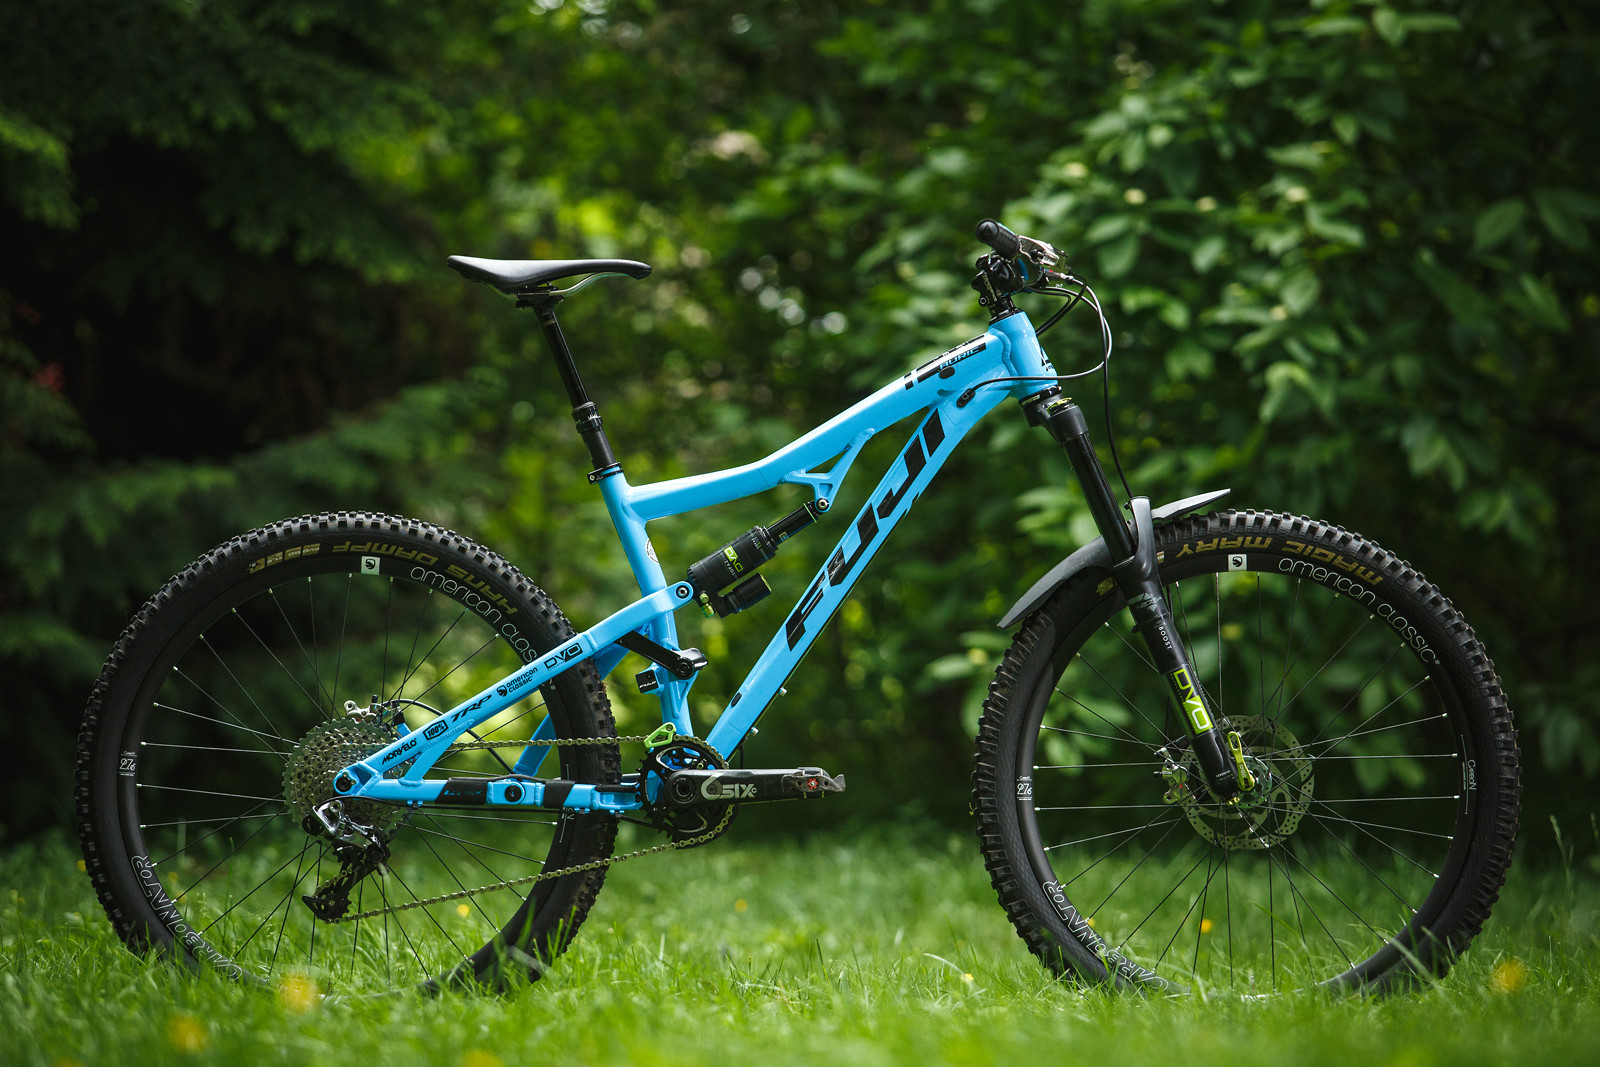 Fuji Auric 1.1 all kitted out with DVO, American Classic, Raceface, Fabric, TRP and One Up Components shiny bits